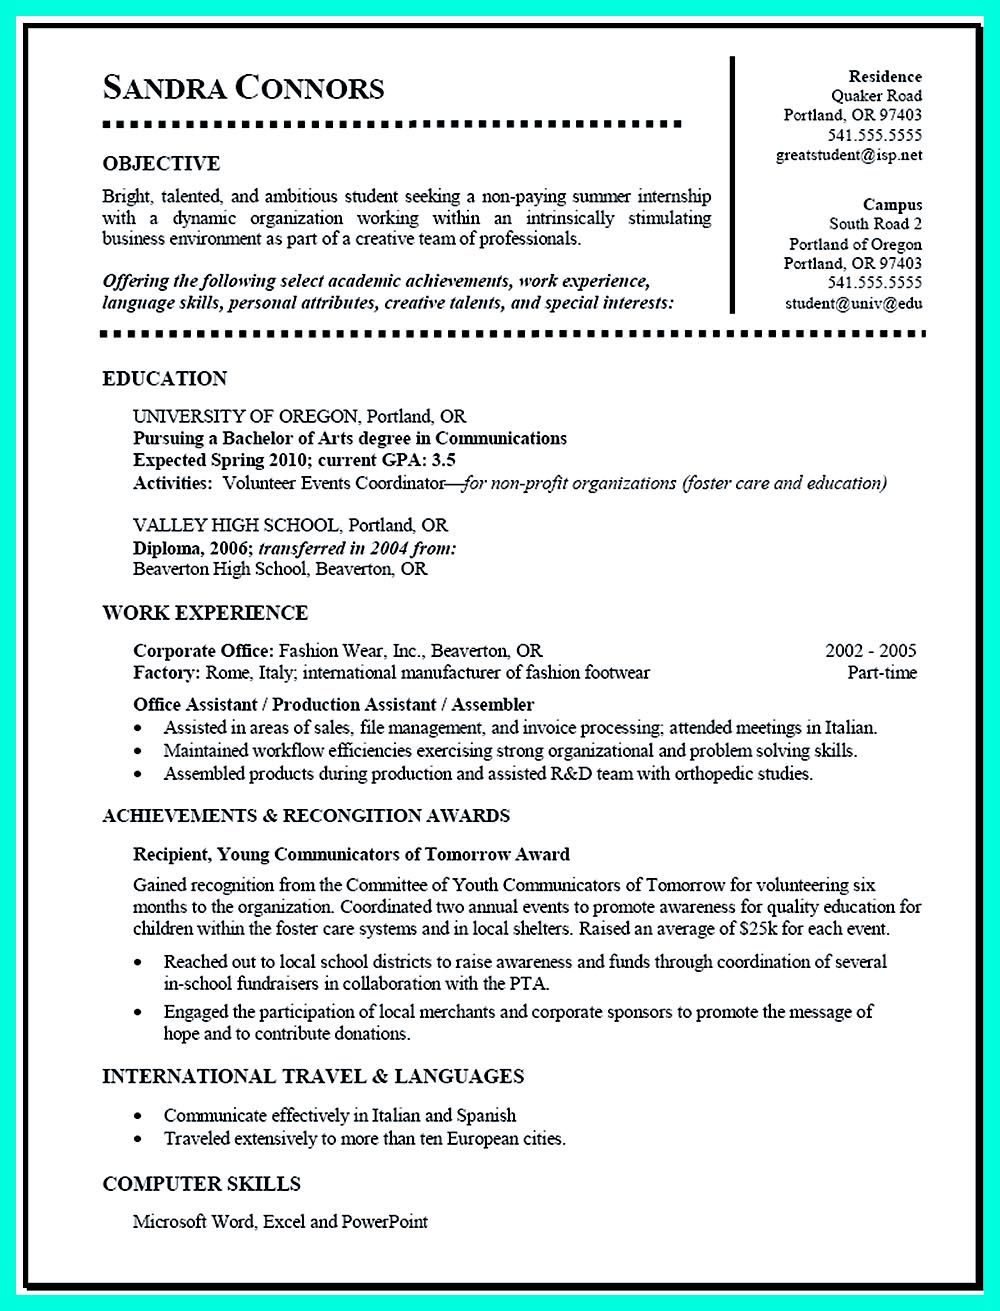 best current college student resume with no experience examples job for fresh graduate Resume Resume For Fresh Graduate Seeking Any Job